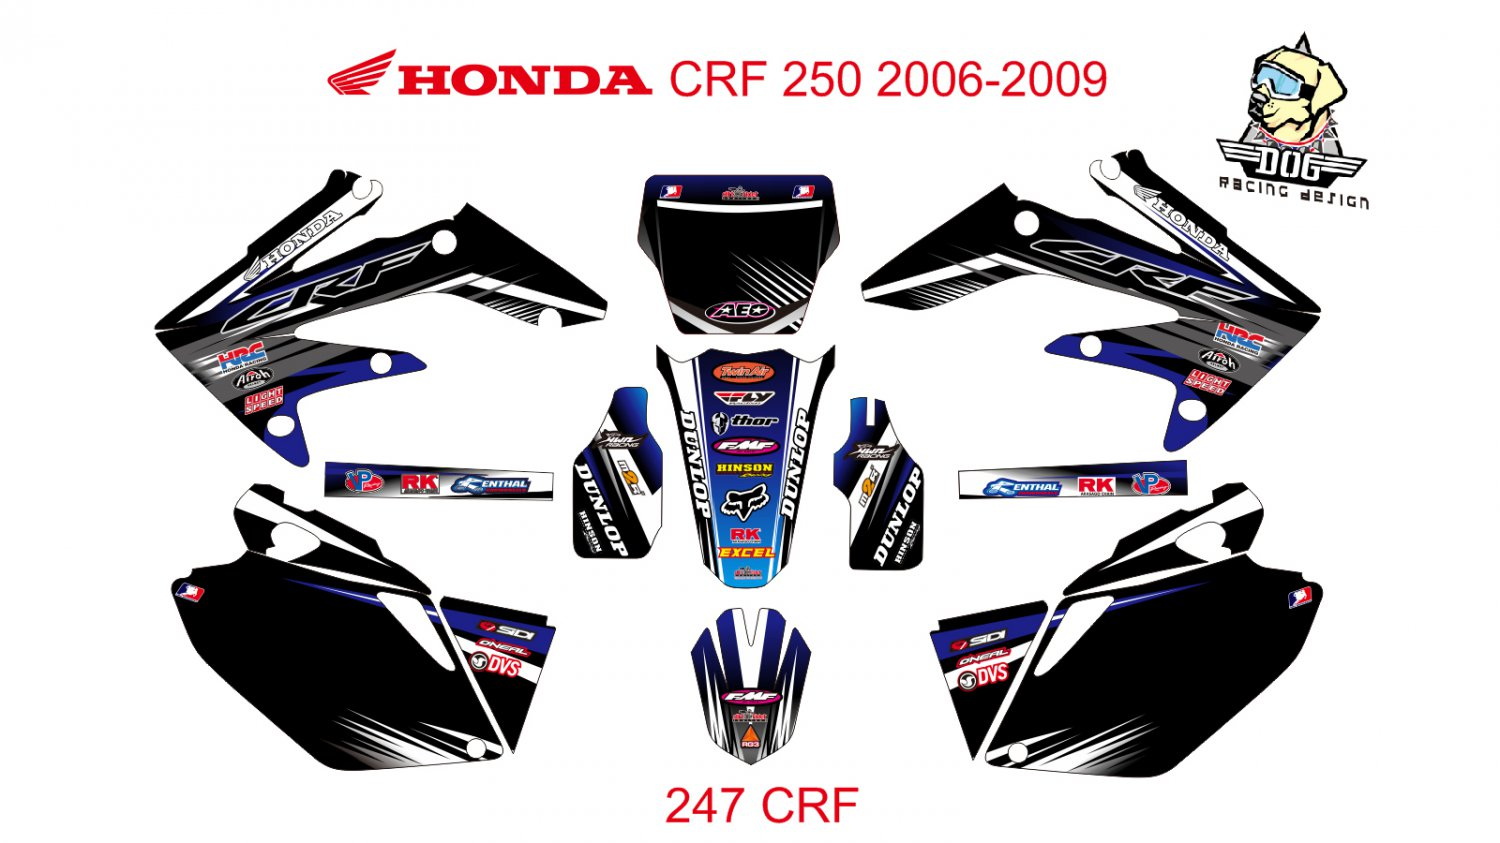 HONDA CRF 250 2006-2009 GRAPHIC DECAL KIT CODE.247